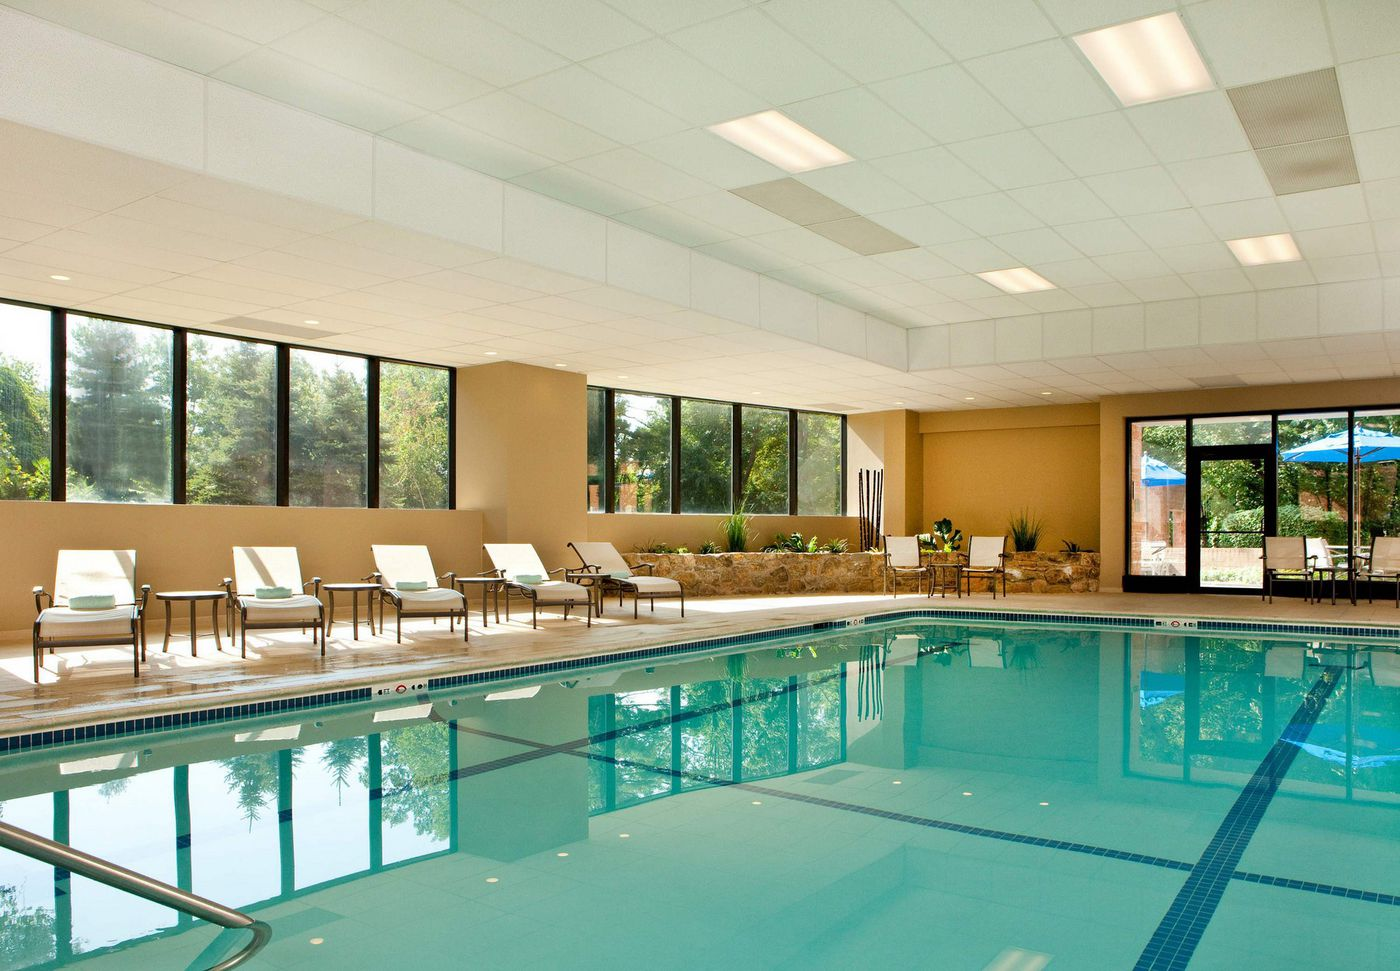 Indoor swimming pools 101 cost construction advantages for Pool design questions